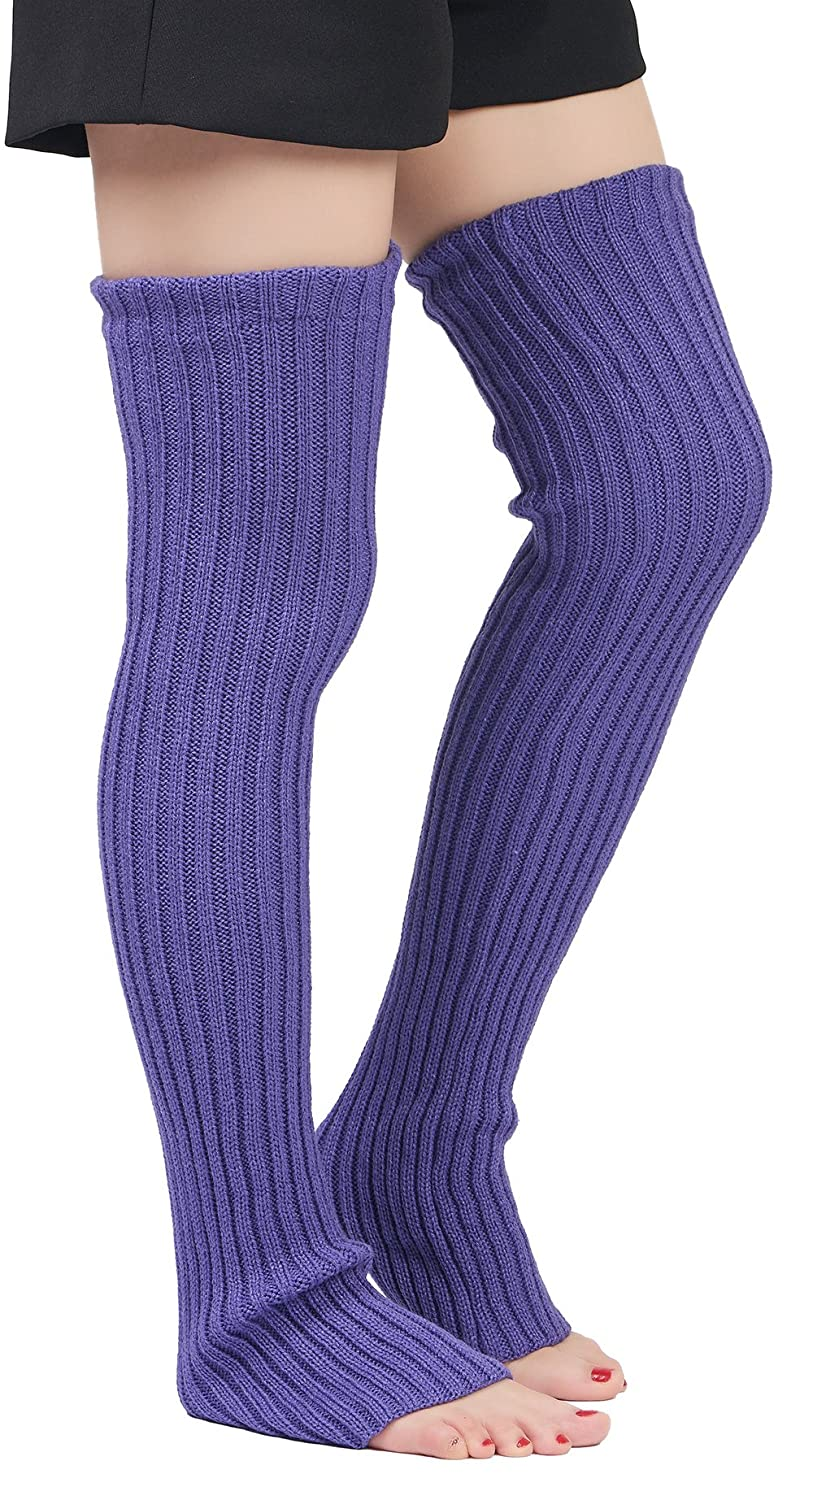 Leotruny Women's Winter Over Knee High Footless Socks Knit Leg Warmers WLW1025-B